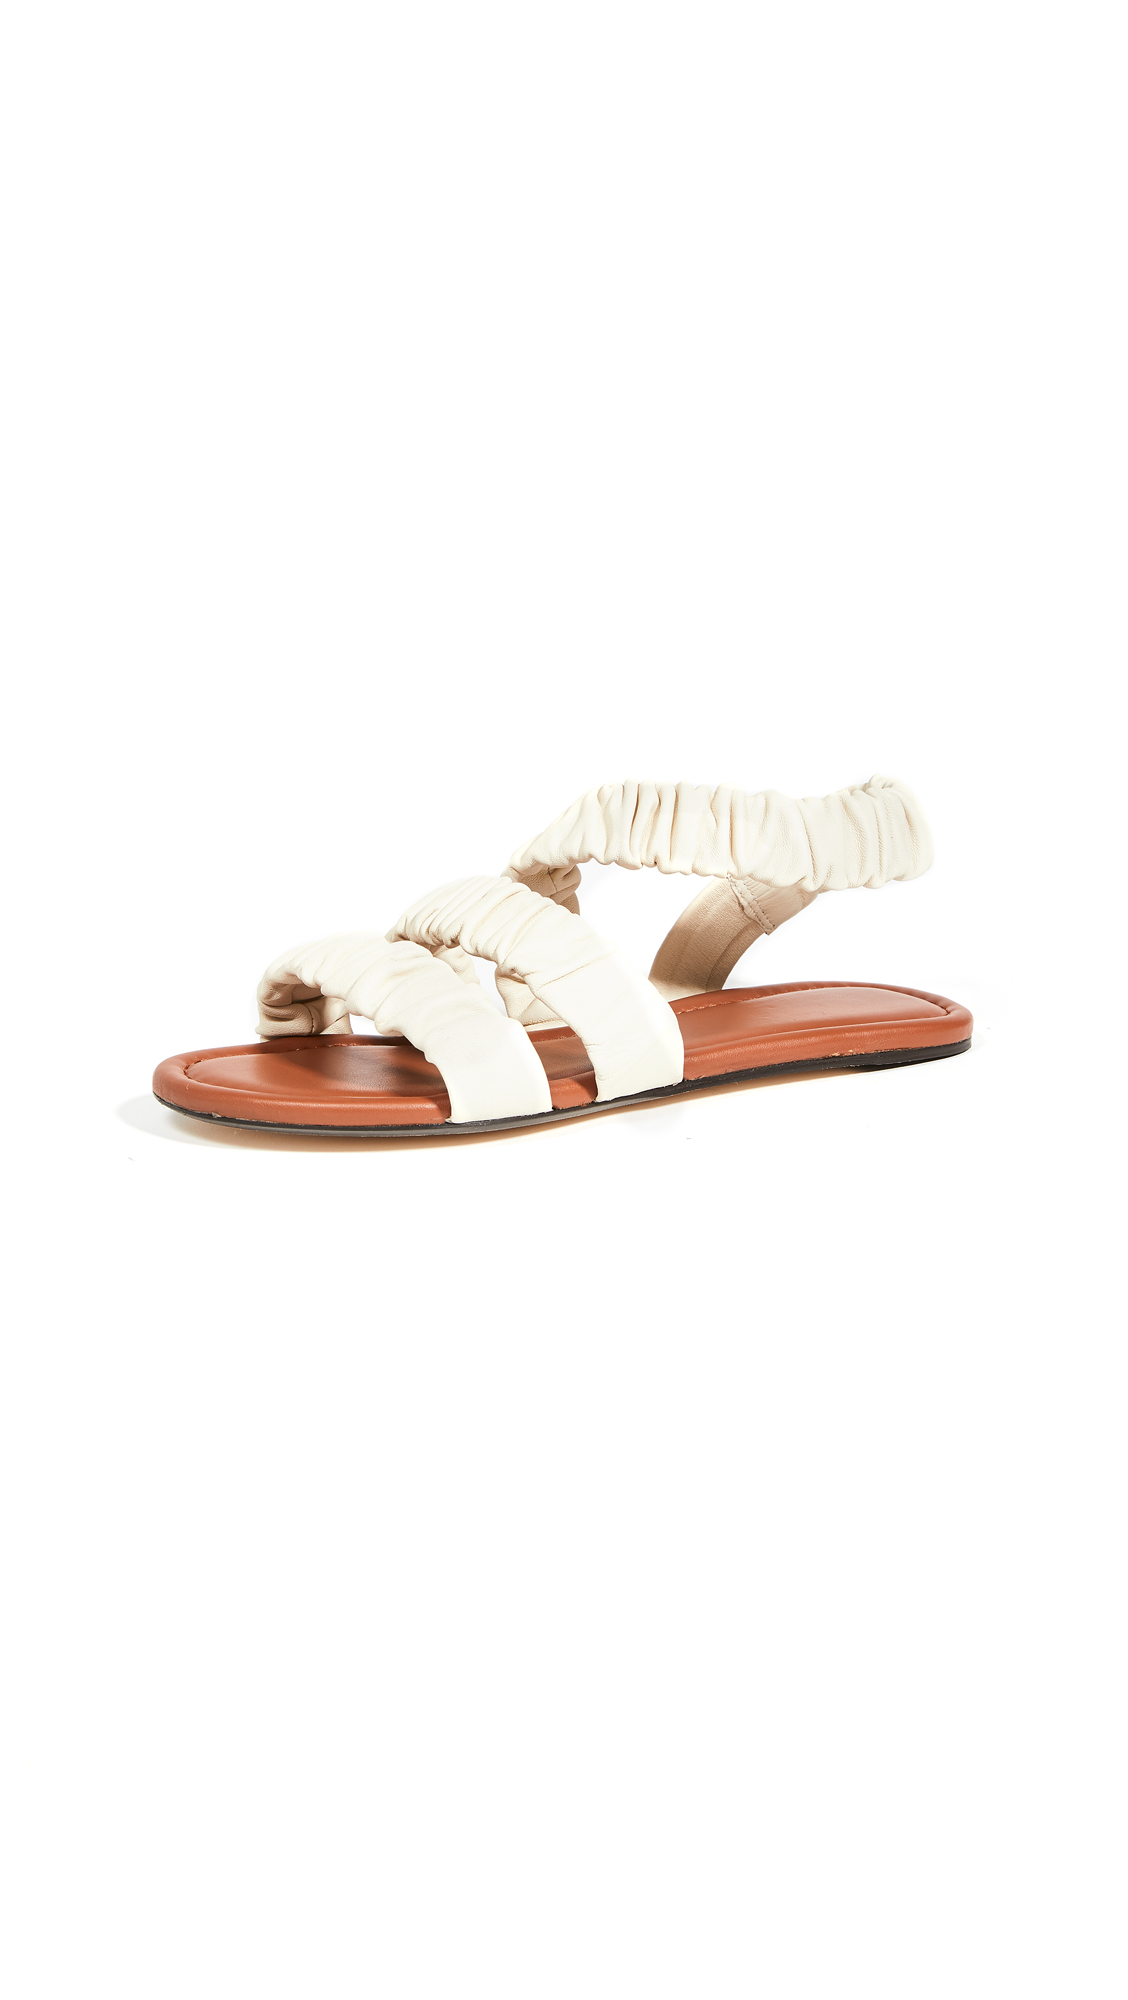 STAUD Ellie Ruched Sandals